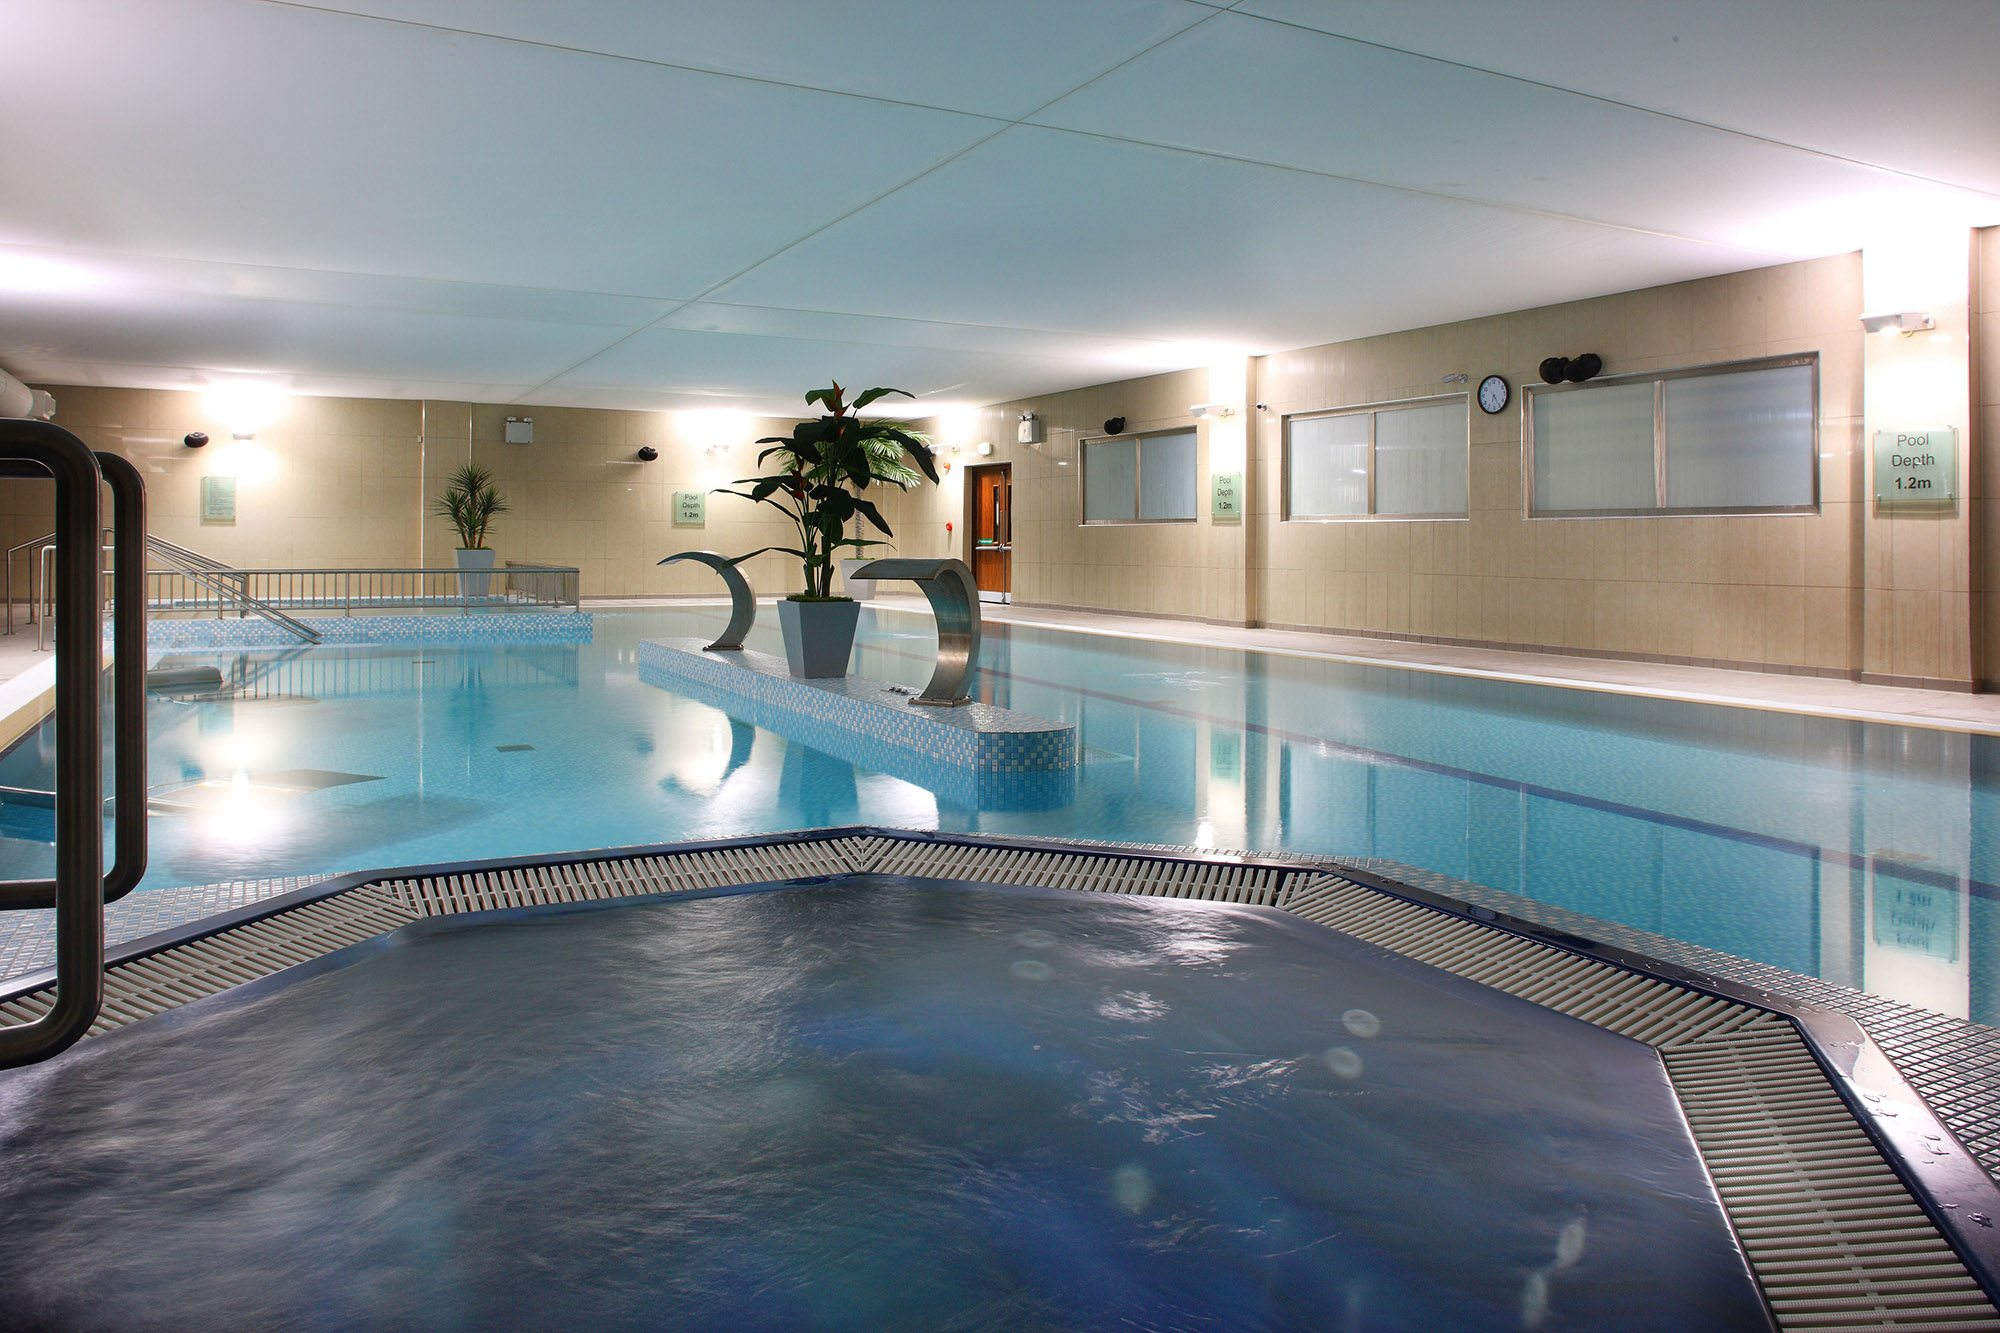 tallaght leisure centre swimming pool gym club vitae maldron hotel tallaght ForMaldron Hotel Tallaght Swimming Pool